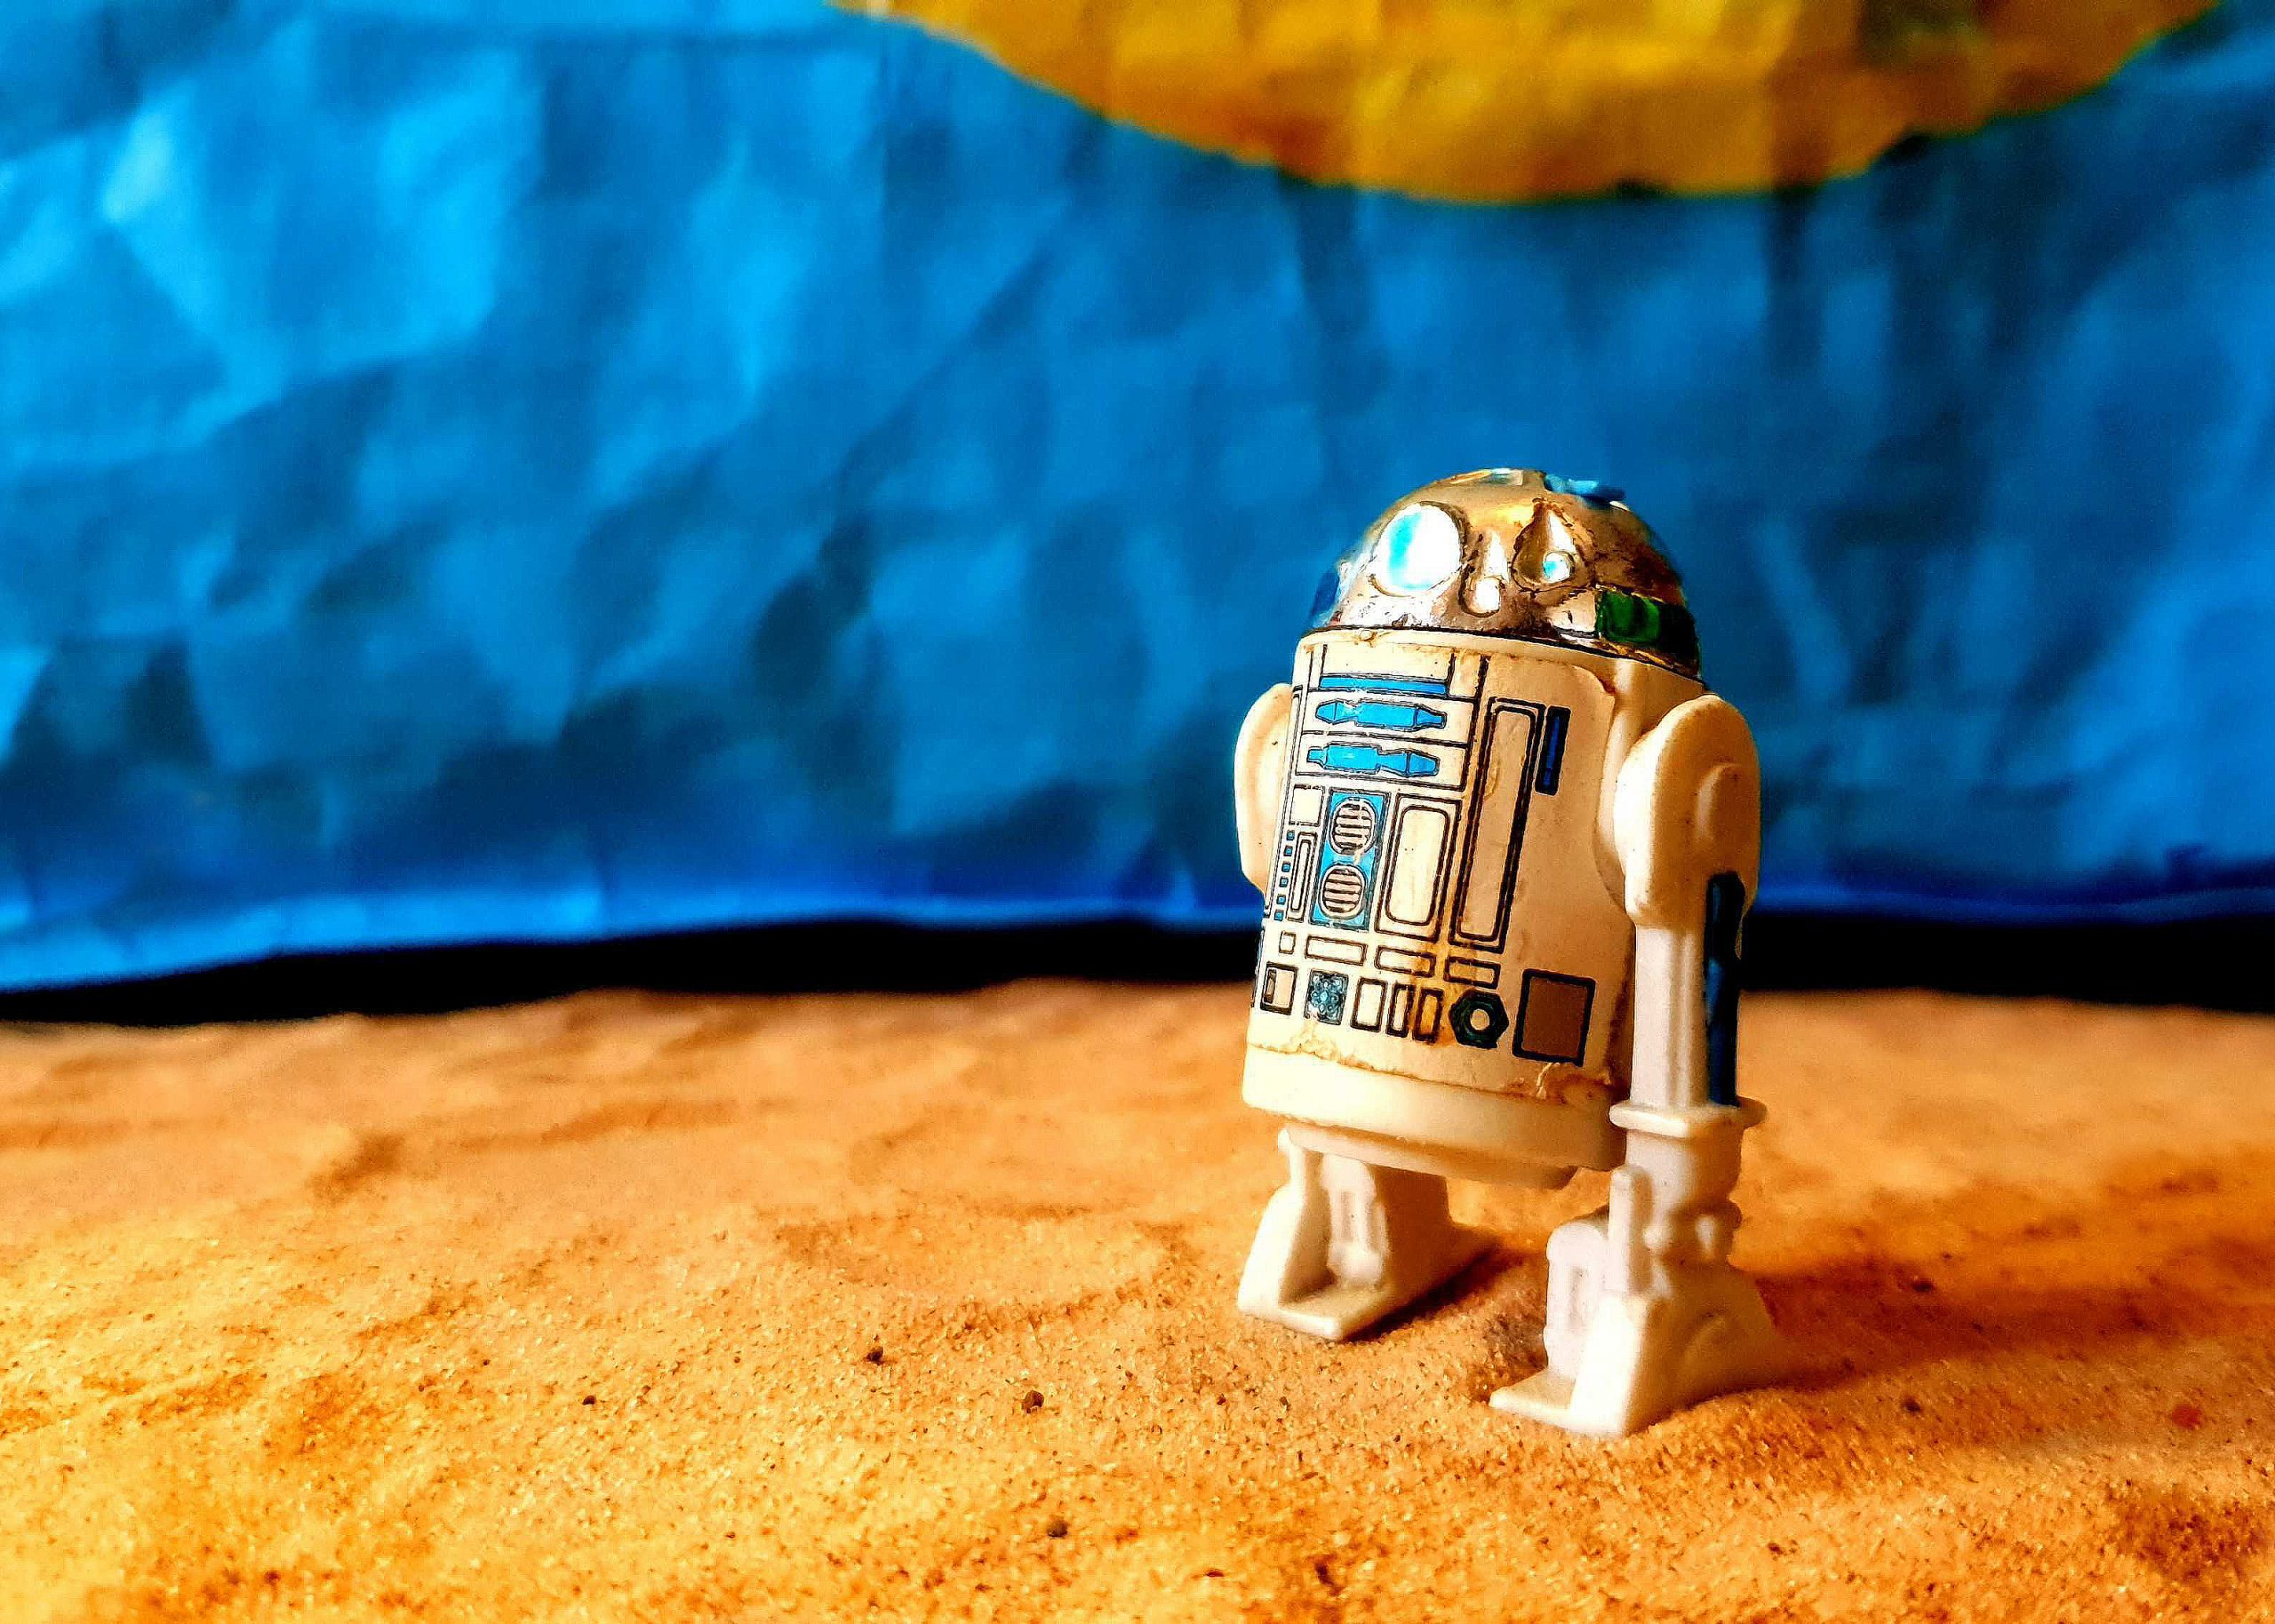 Emma's submission to the Great British Photography Challenge shows R2D2 from Star Wars stood on an area of sand. Behind is a blue sky, which is actually a Lidl shopping bag.